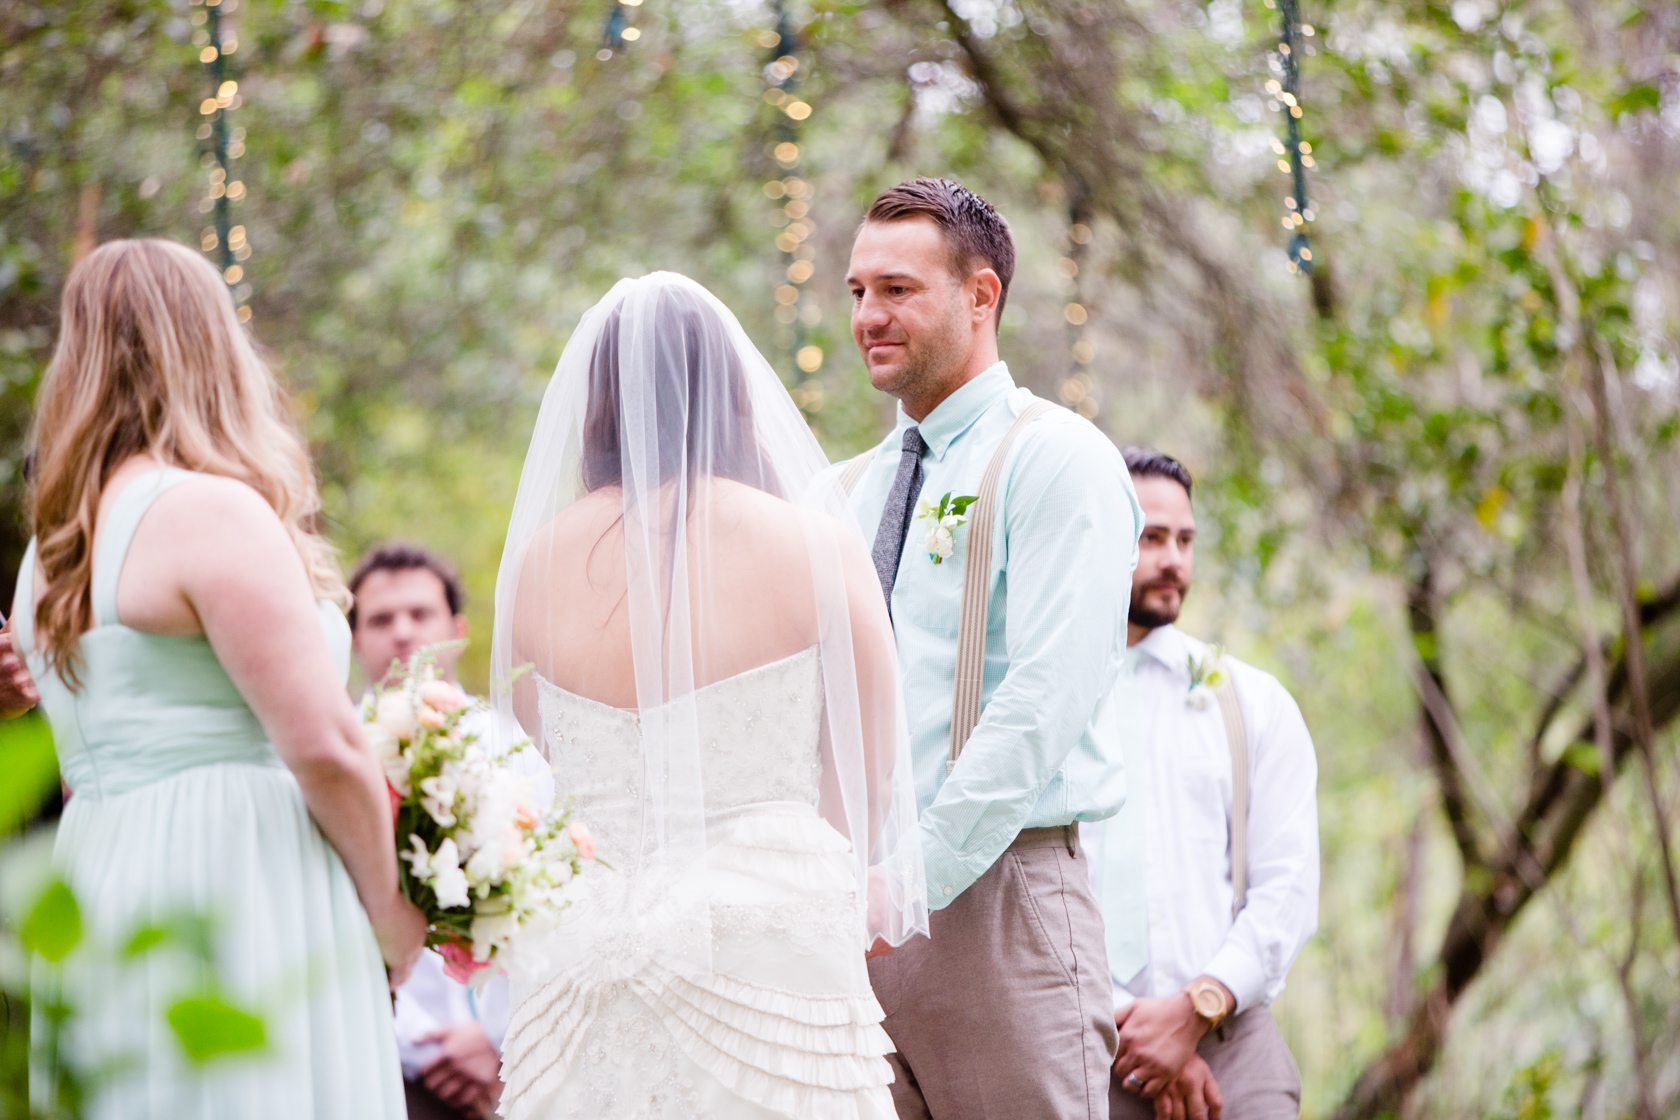 The_Printed_Palette_Wedding_at_Calamigos_Ranch_068.jpg